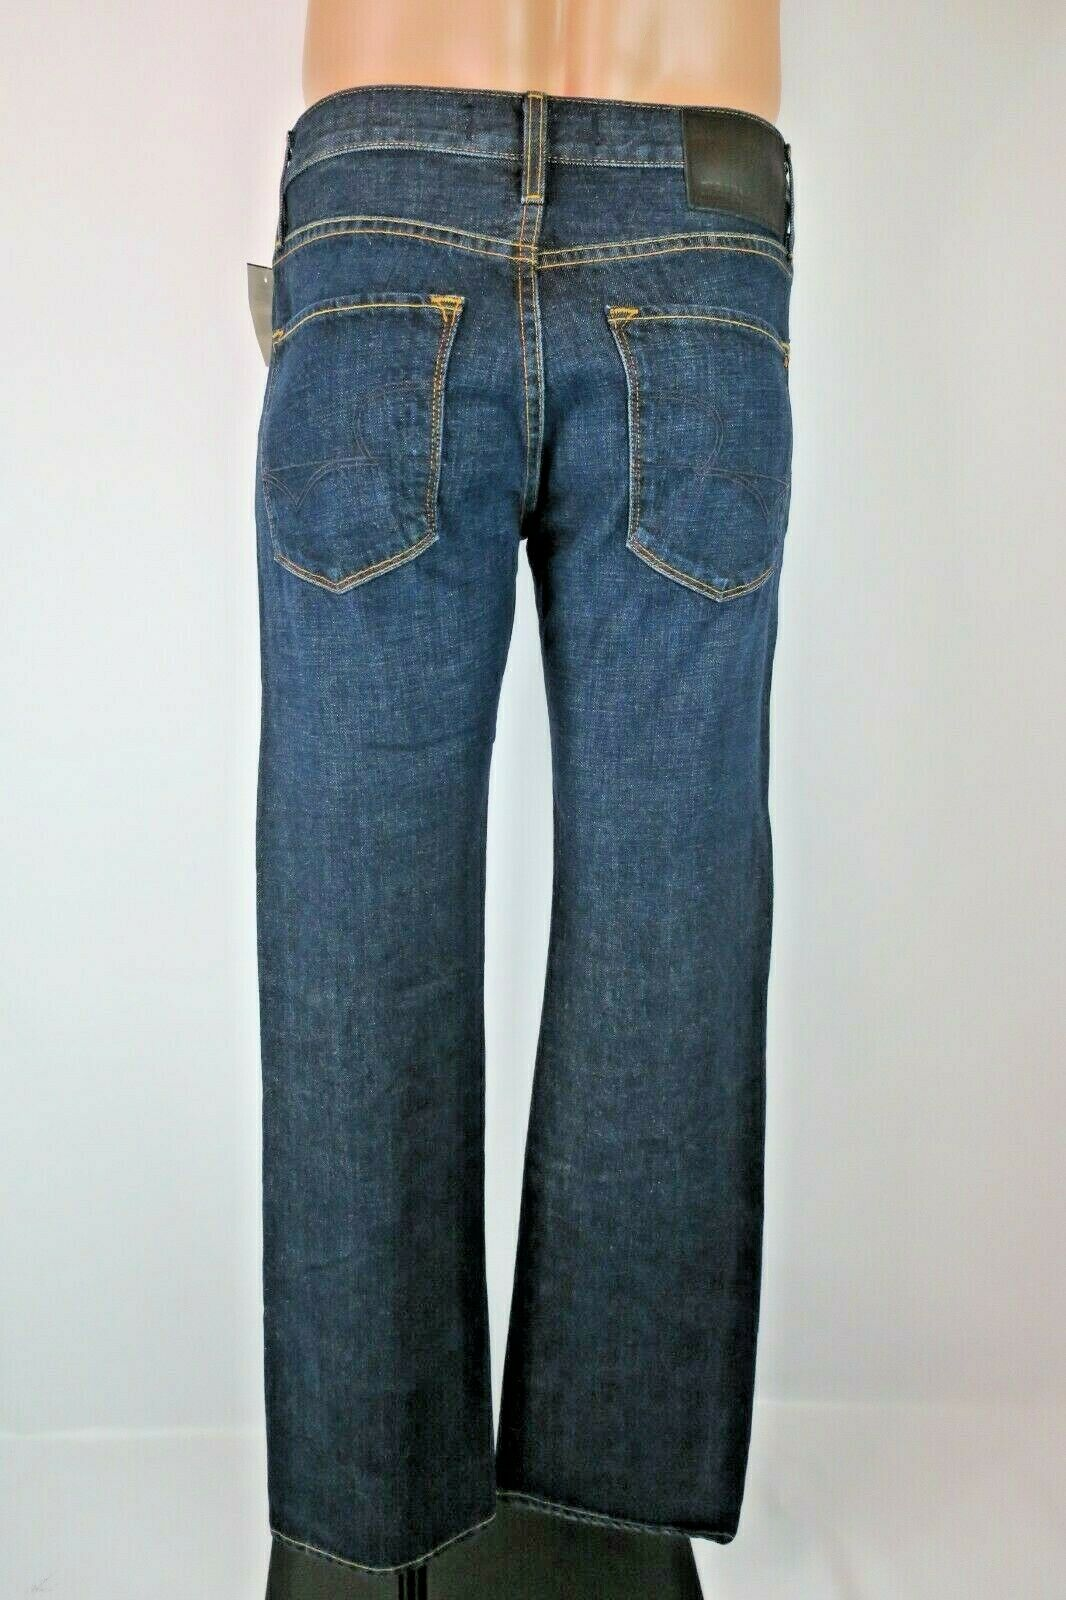 NEW BIG STAR Straight Leg Jeans Union 30R 32 inseam VERY Dark Denim Wash NWT BKE